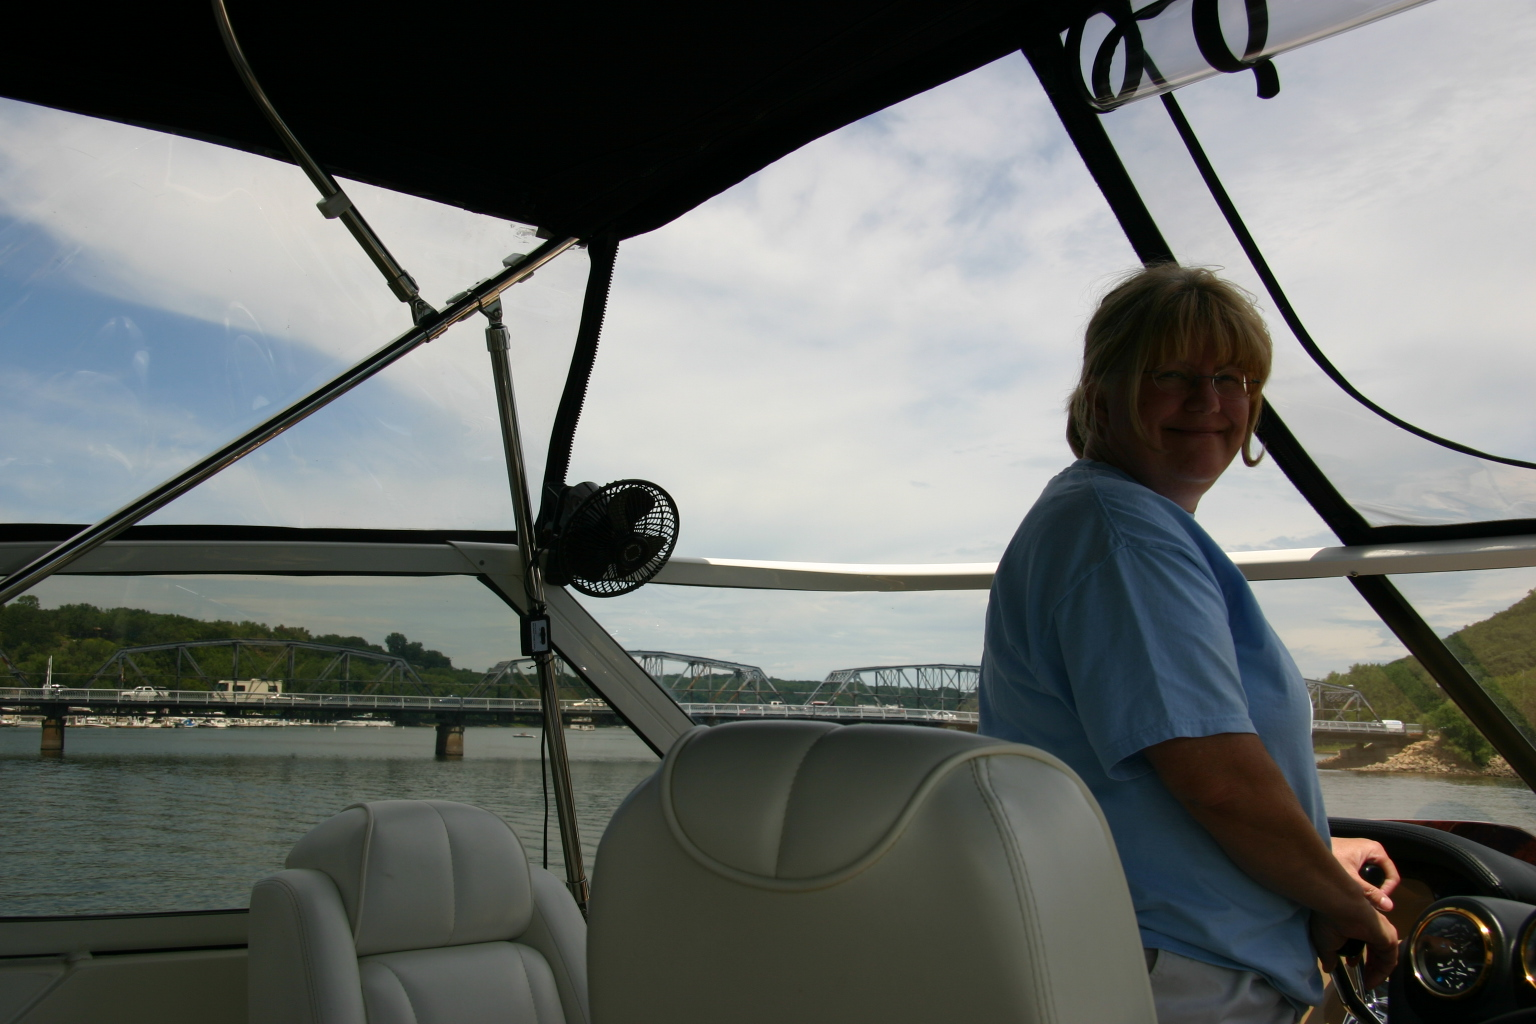 Capt. Coleen views the Stillwater lift bridge